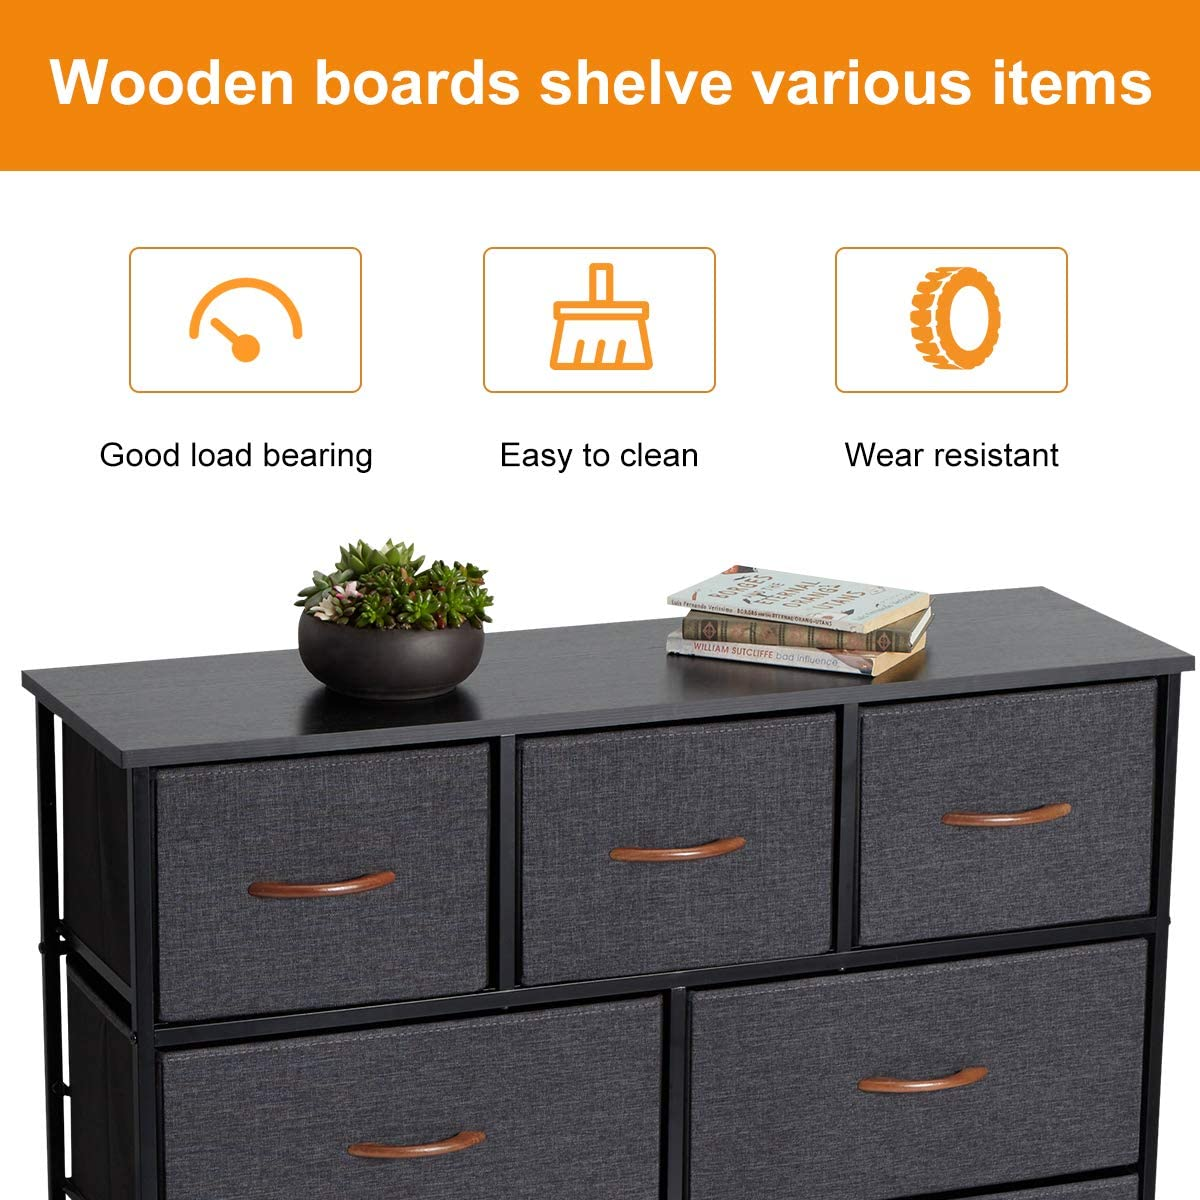 AVAWING Dresser with 9 Drawers Wooden Top Hallway- Sturdy Steel Frame Fabric Dresser Tower for Closets,Bedroom Vertical Storage Tower Dresser for Bedroom with Drawers Grey